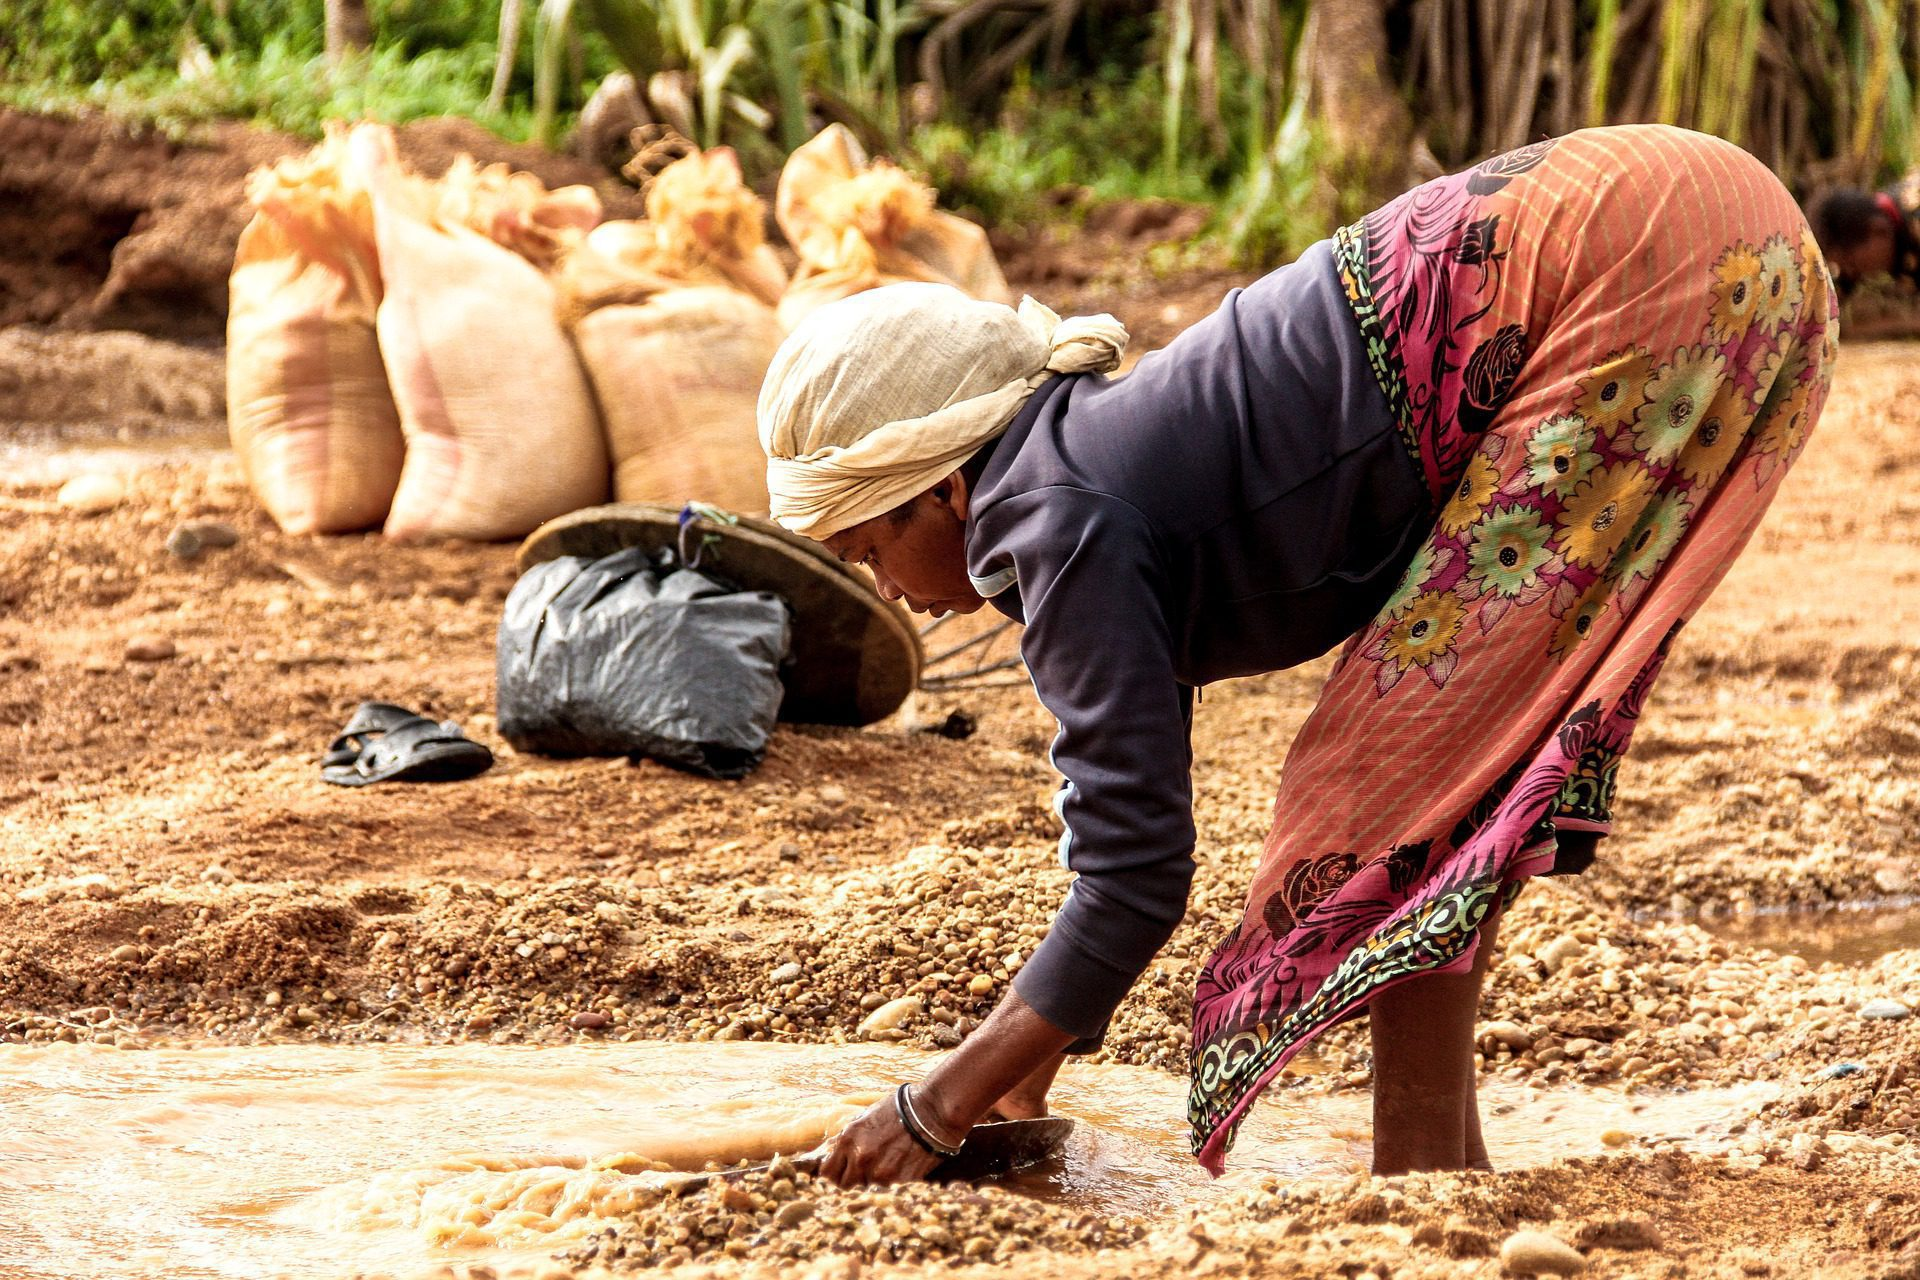 woman tending the soil with bags of grains in Madagascar